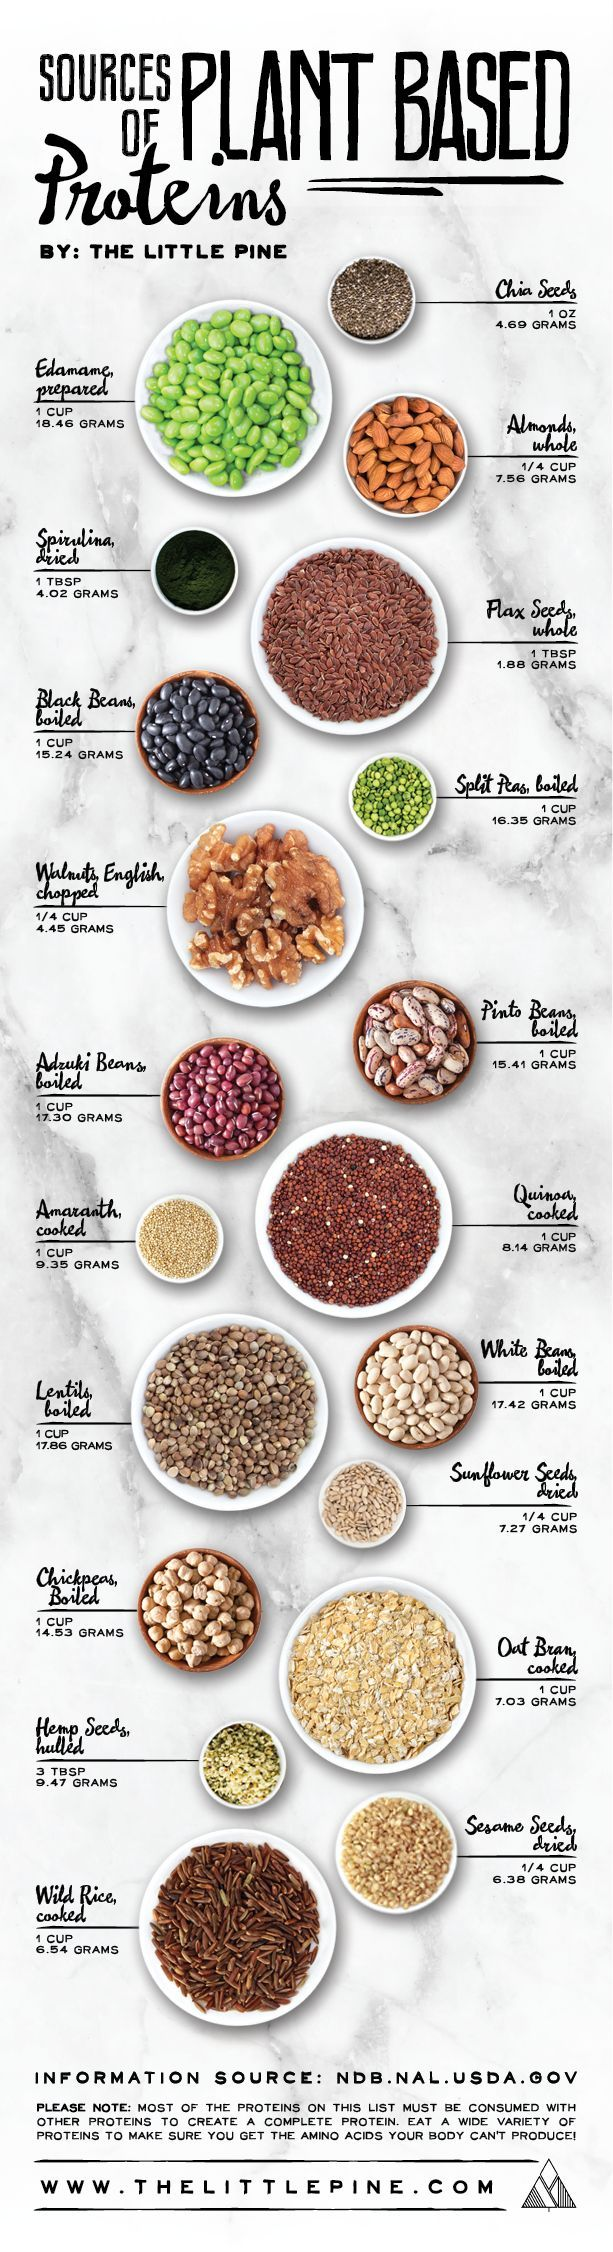 If you are a vegan, you can totally get all your protein needs met by eating a whole food plant-based diet. Many vegan athletes have proved this point, but you need to be smart about where to find out. That's why this vegan, plant-based protein chart is really helpful.http://bit.ly/29YJlch